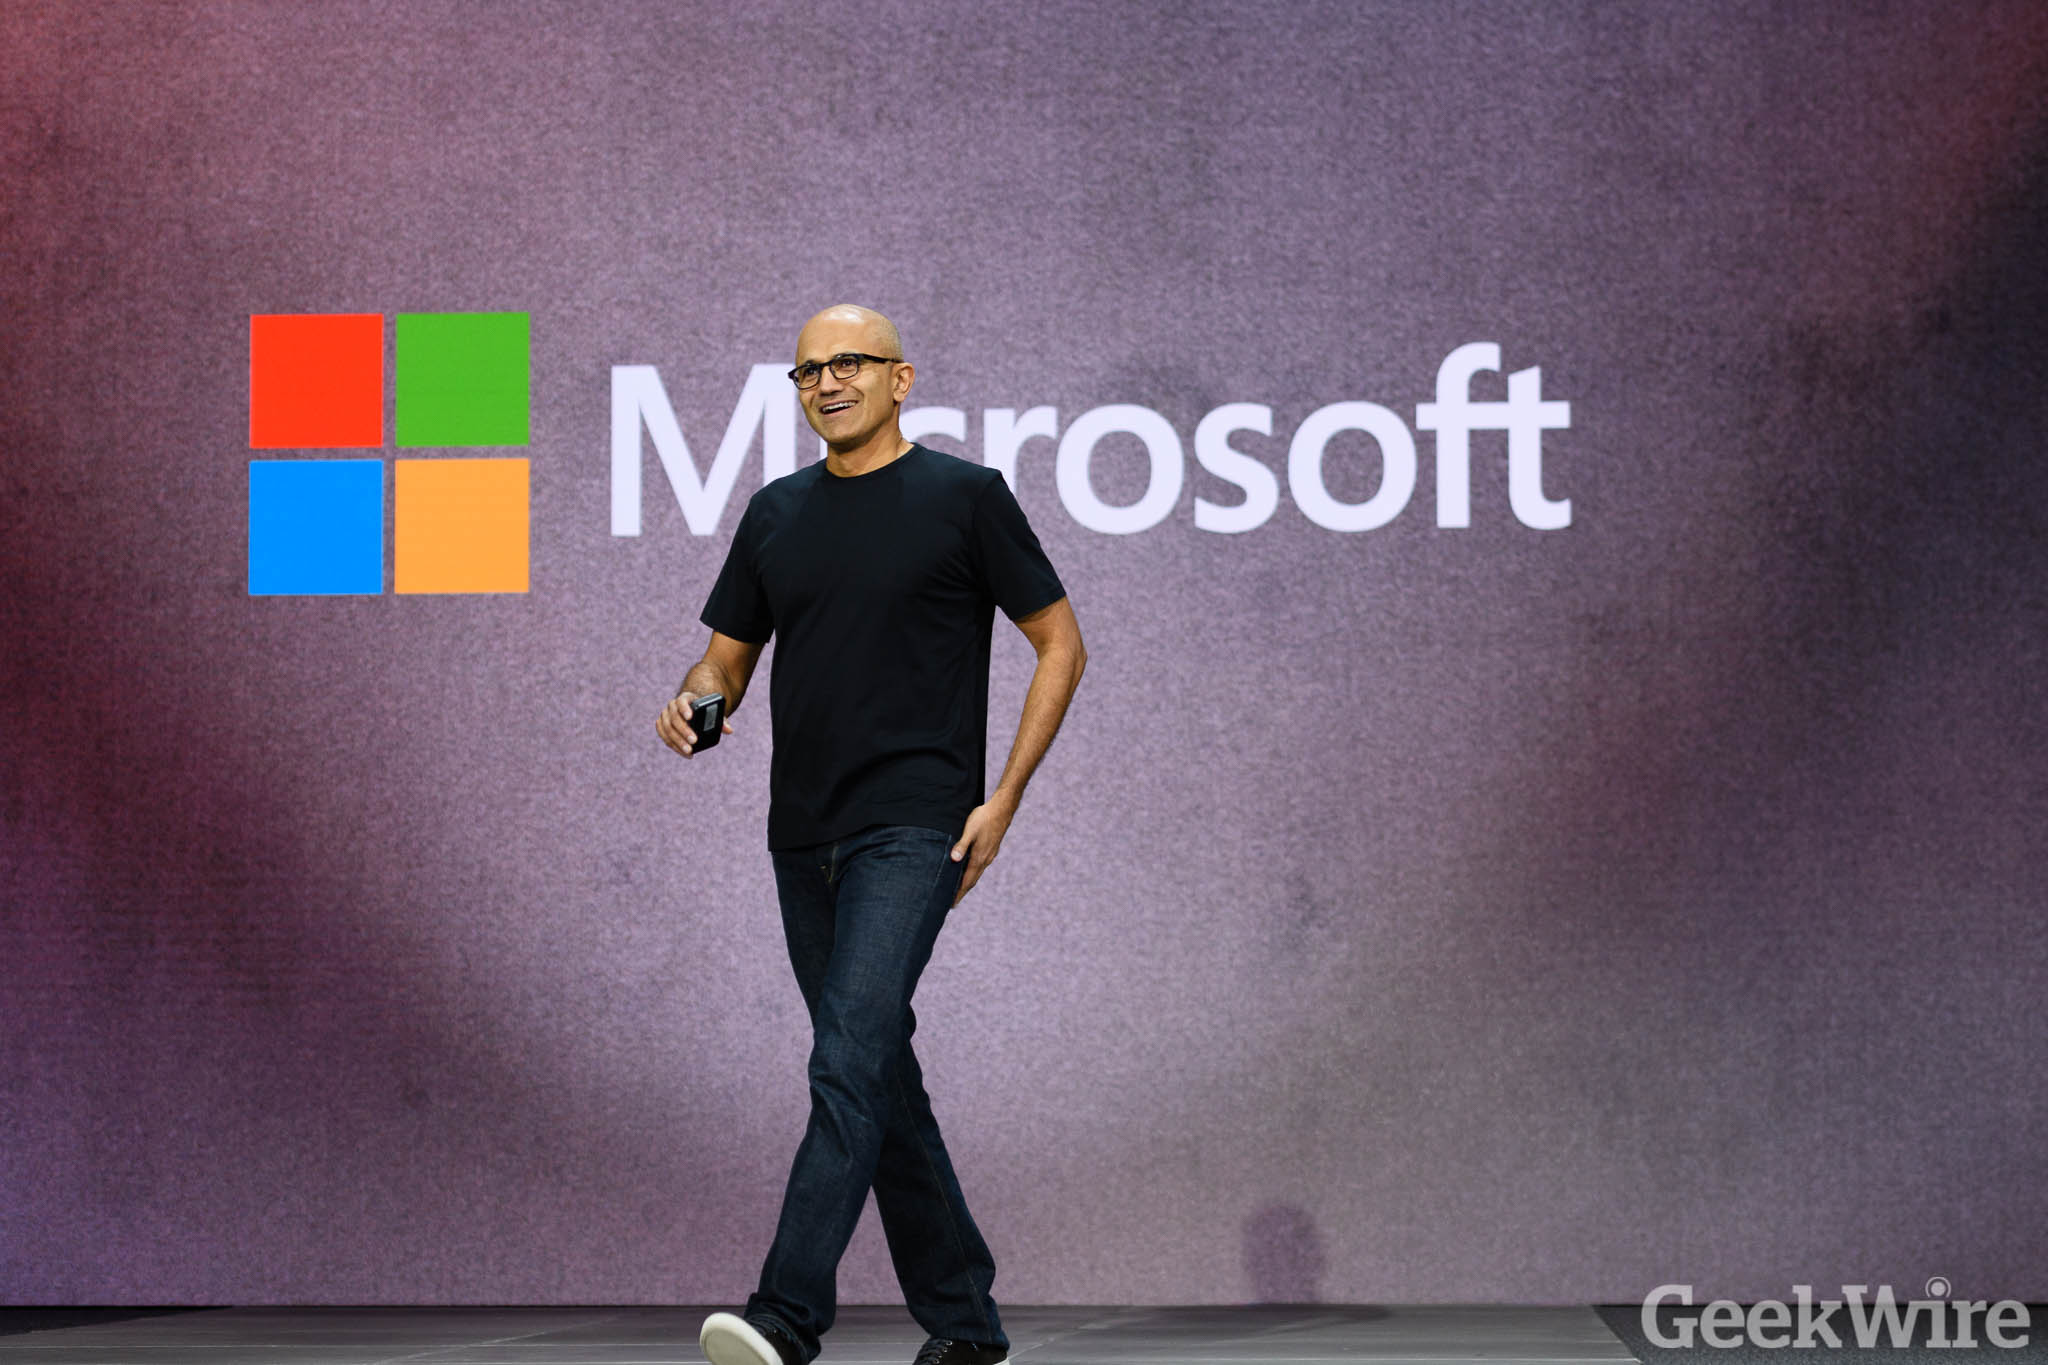 Week in Geek: Everything we know about Microsoft's layoffs